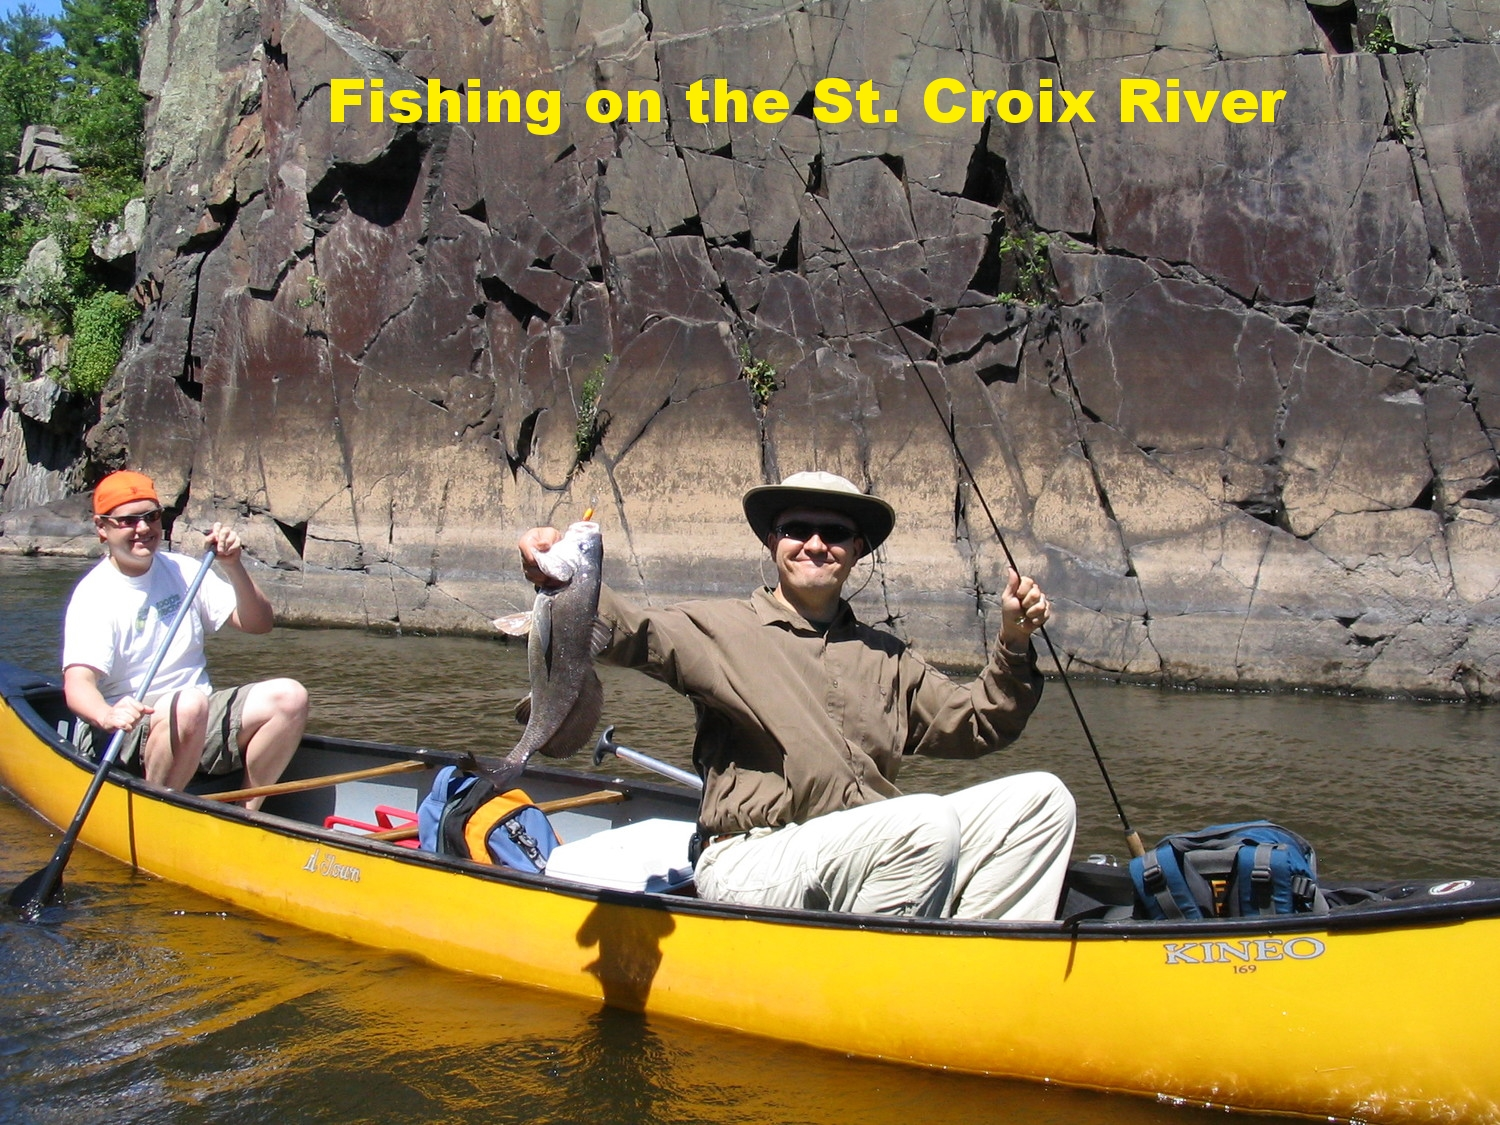 WCD manager Jay Riggs with fish on St. Croix.jpg